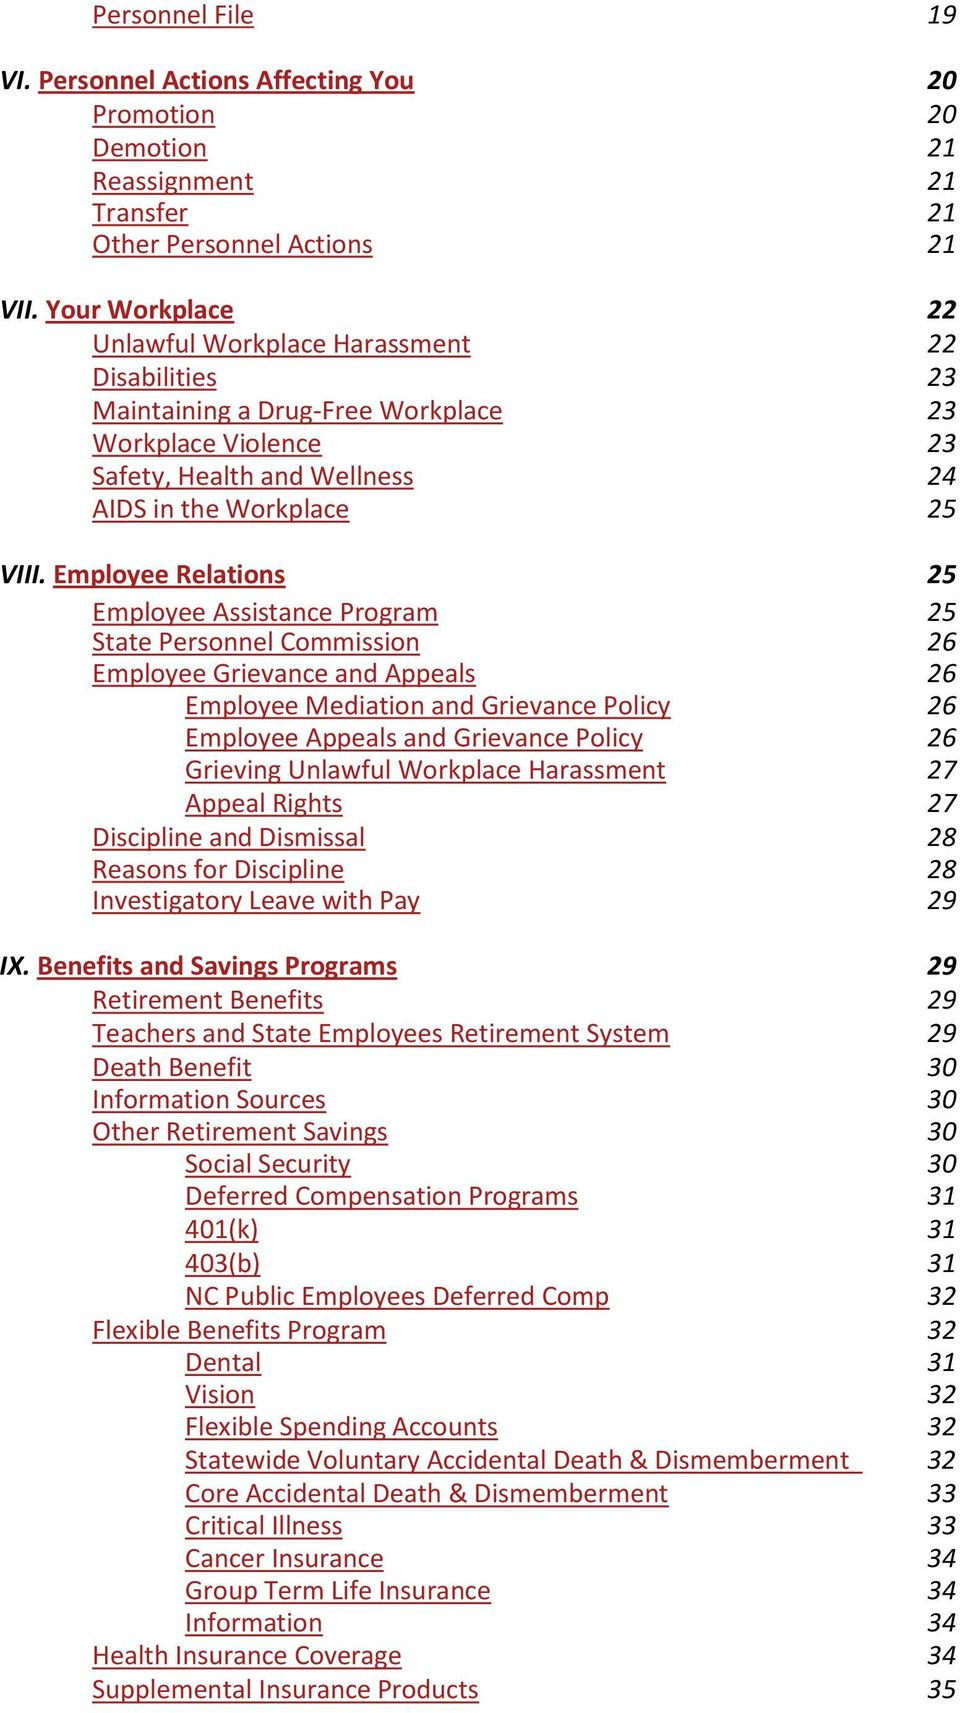 Employee Relations 25 Employee Assistance Program 25 State Personnel Commission 26 Employee Grievance and Appeals 26 Employee Mediation and Grievance Policy 26 Employee Appeals and Grievance Policy